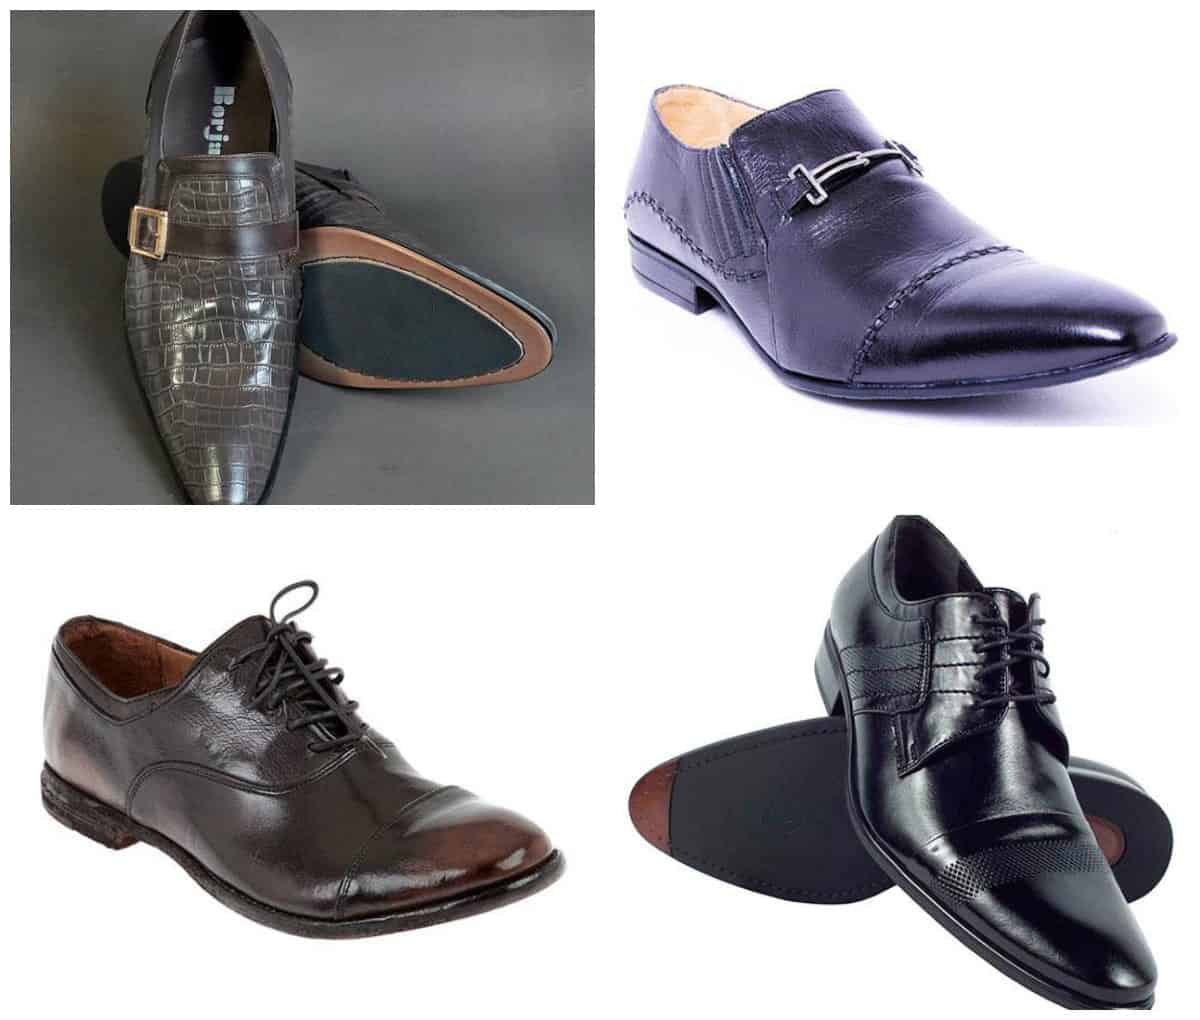 Men's fashion shoes trends spring-summer 2016 – DRESS TRENDS